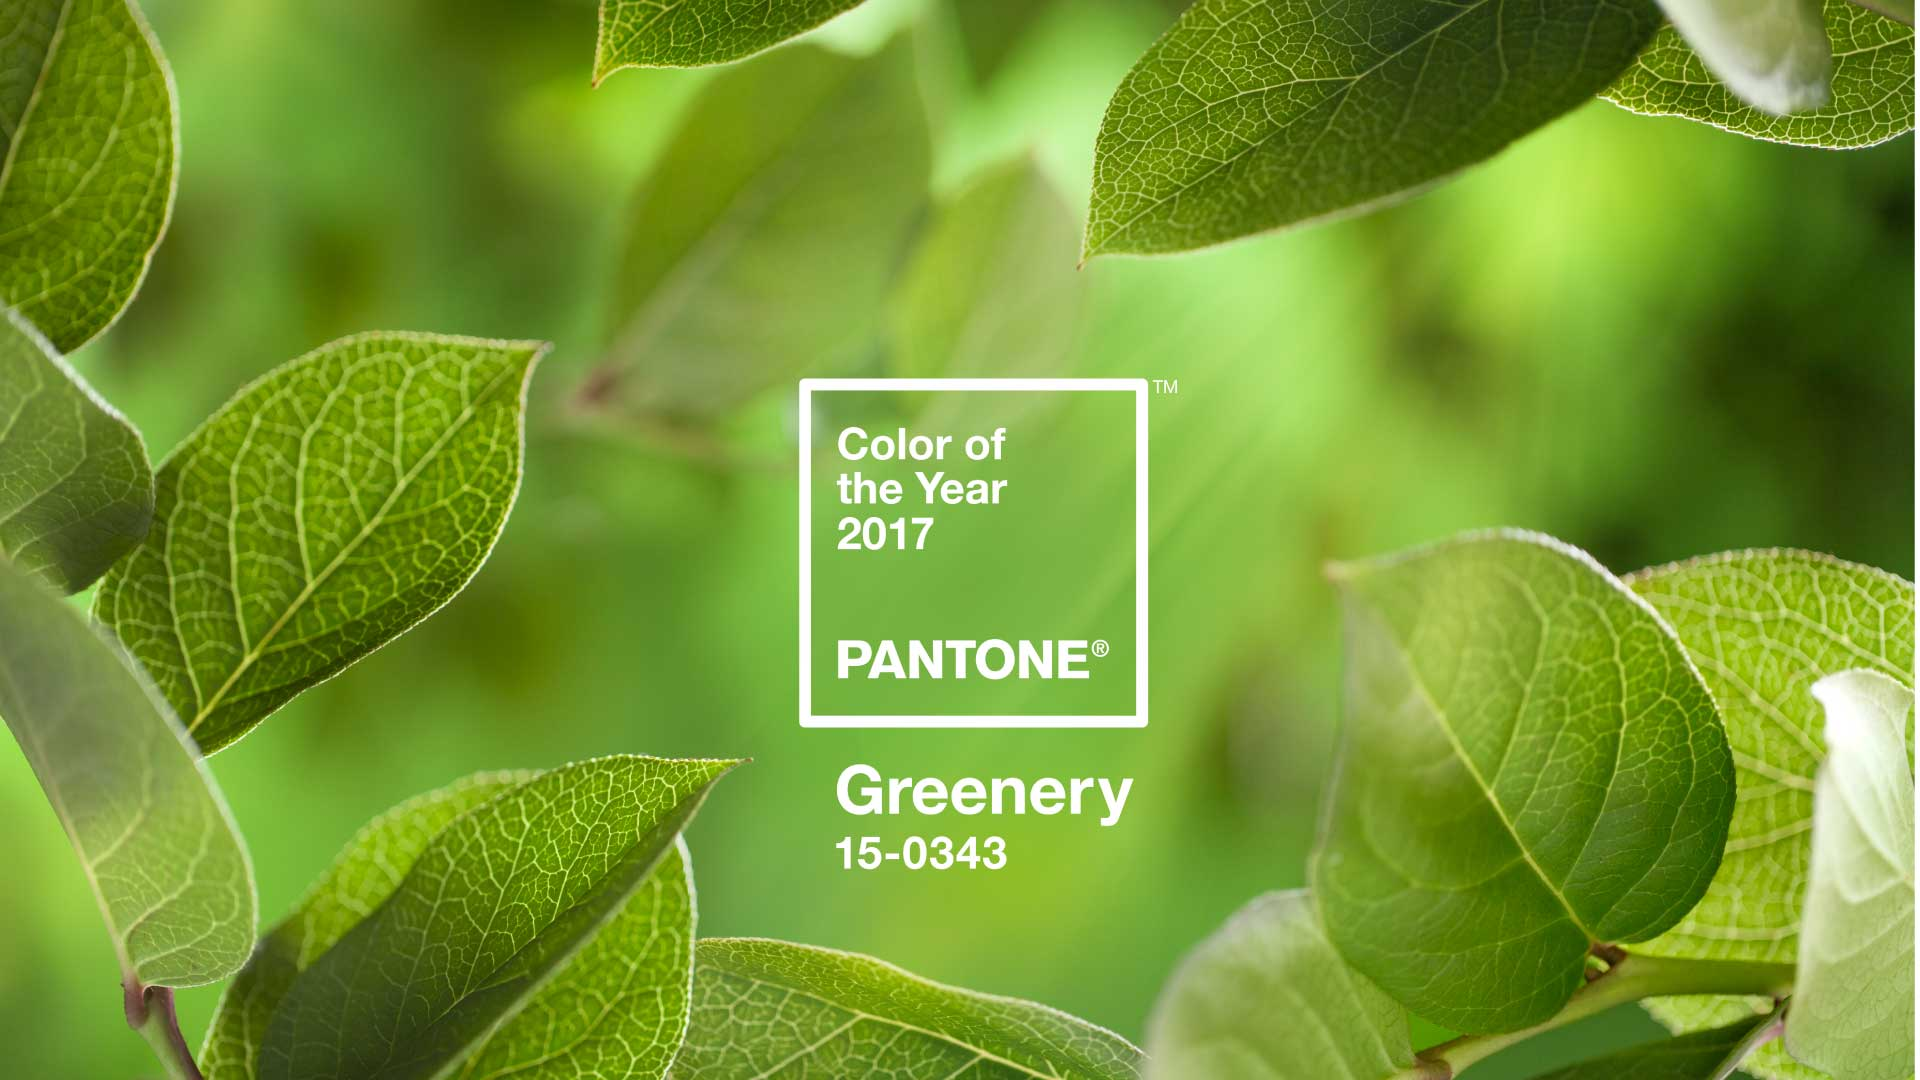 Cor do ano 2017: PANTONE Greenery 15-0343